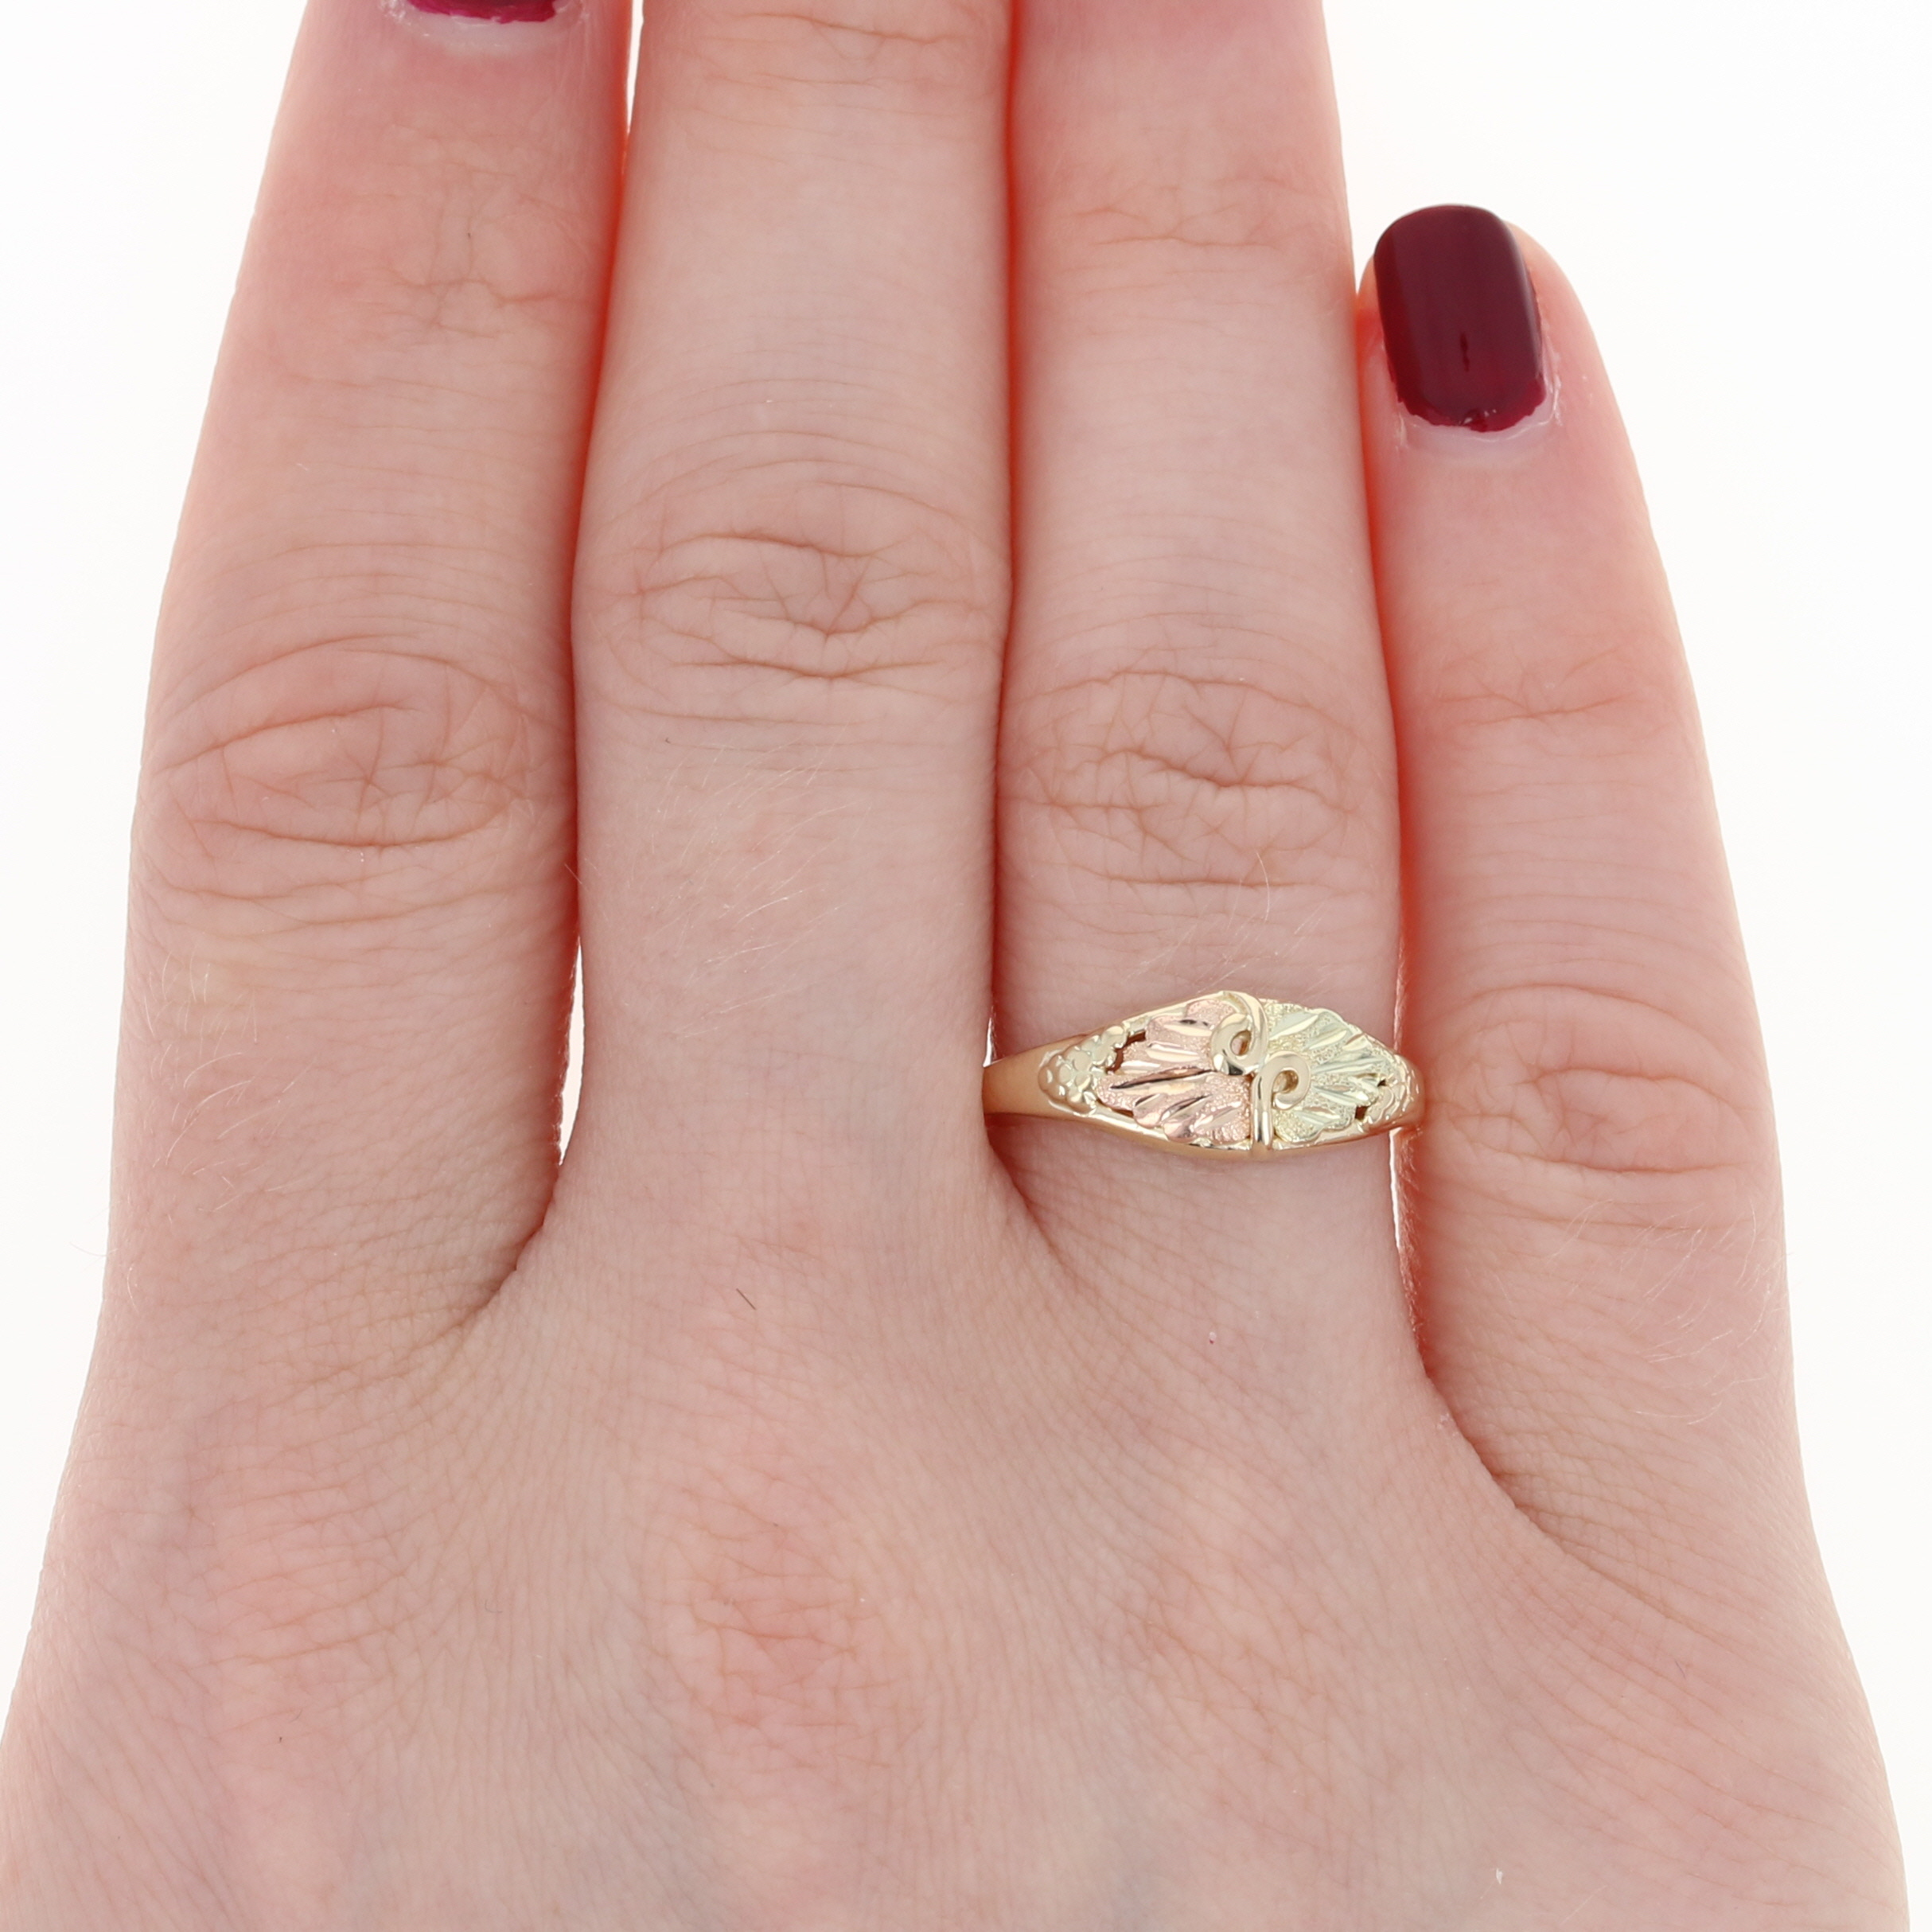 Textured Grapevine Leaf Ring - 10k Yellow, Rose, & Green Gold Size 7 ...